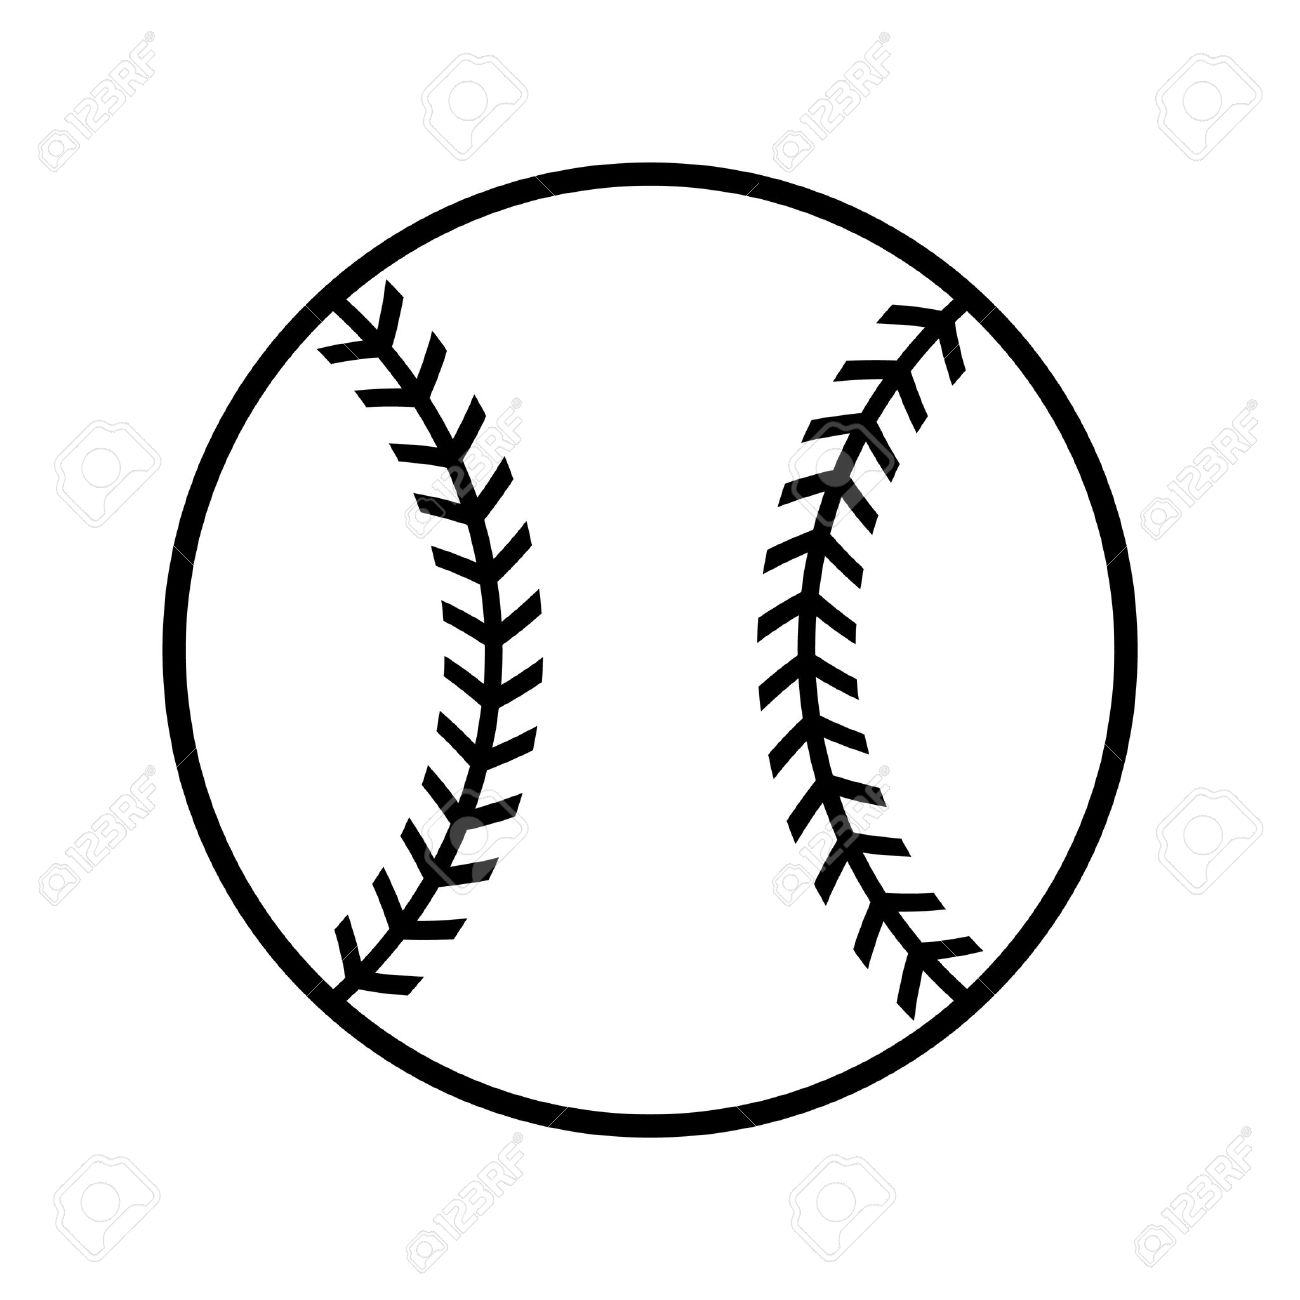 hight resolution of baseball vector icon